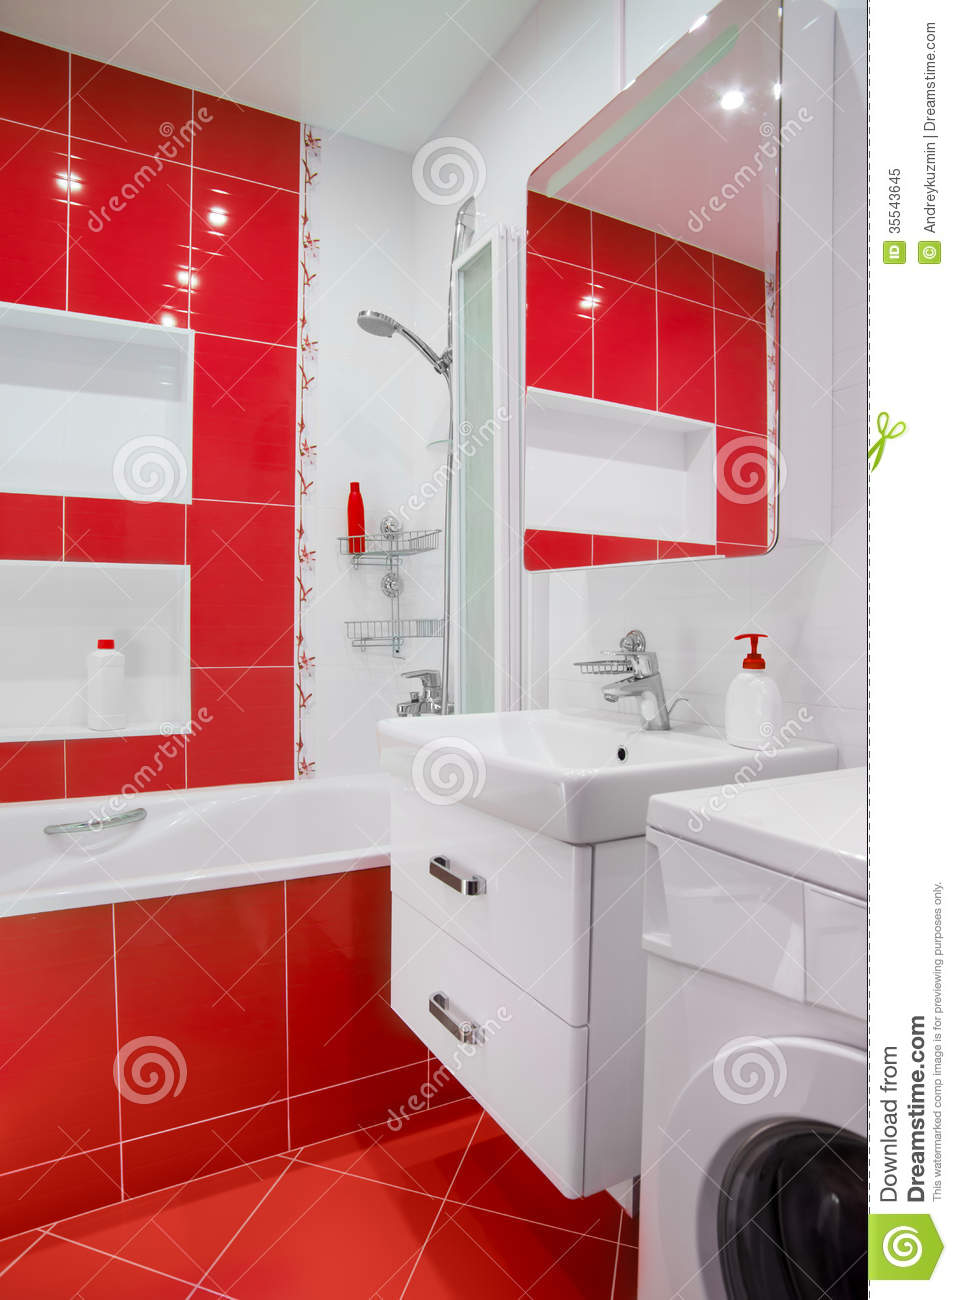 Modern Red Bathroom Interior With Mirror And Showe Royalty